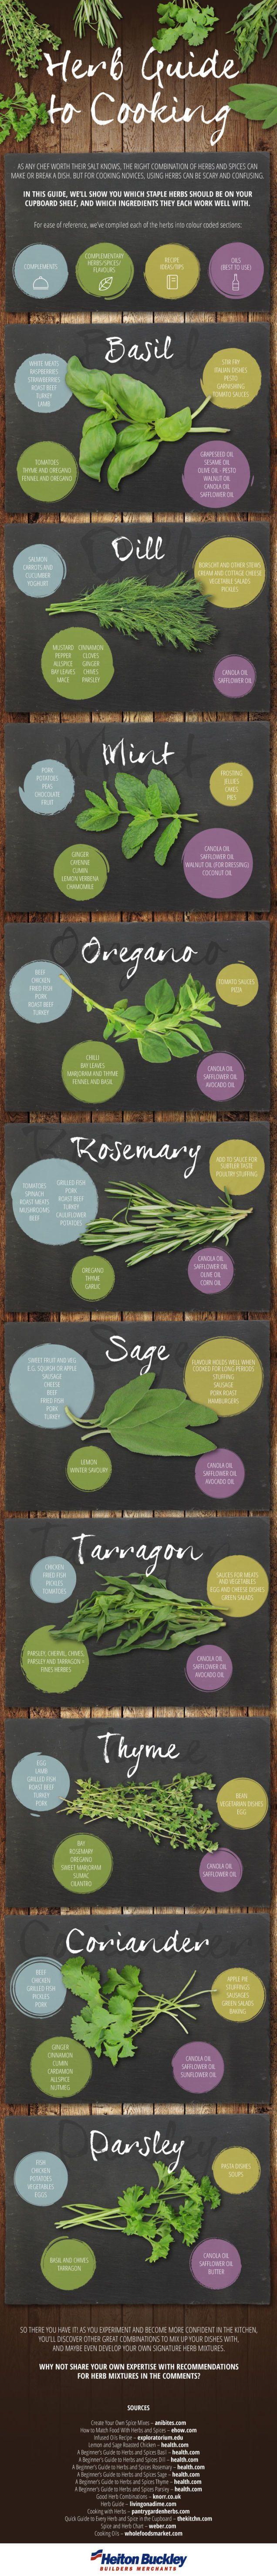 This Infographic Tells you How to Best Use Herbs in Your Cooking #Infographic #Cooking #Herbs #infographics